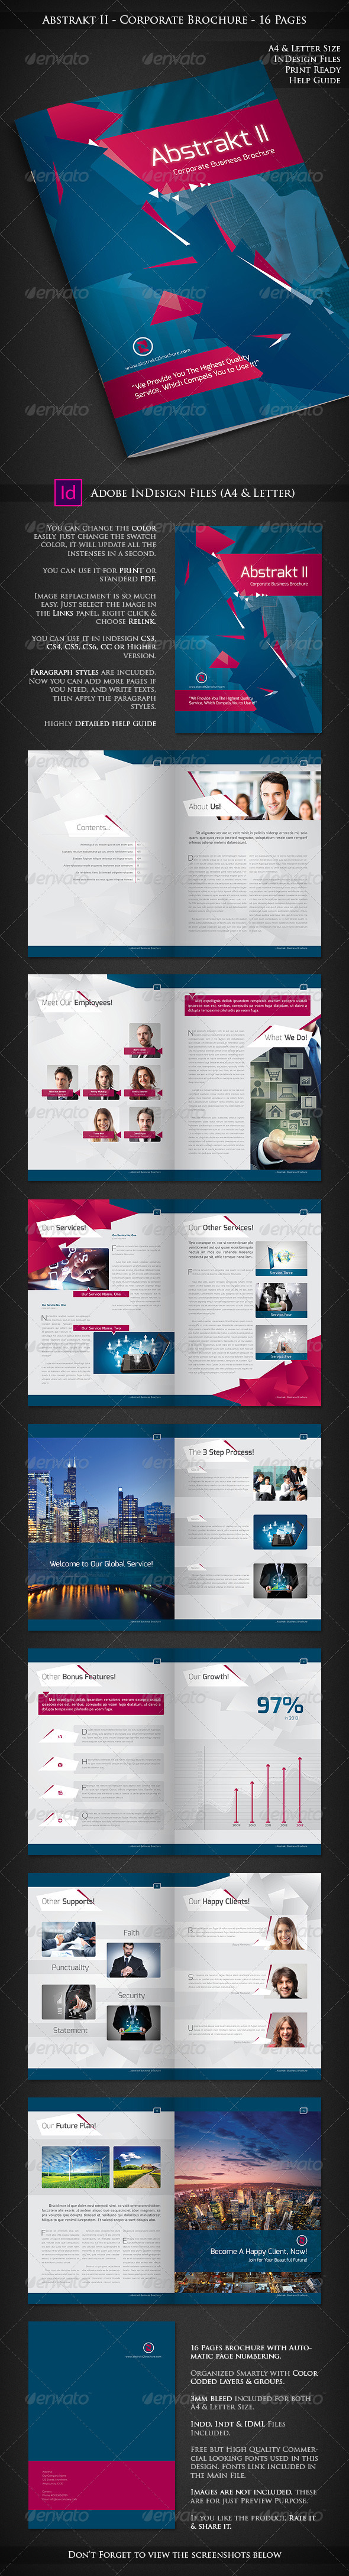 Abstrakt II - Corporate Company Profile - 16 Pages - Corporate Brochures